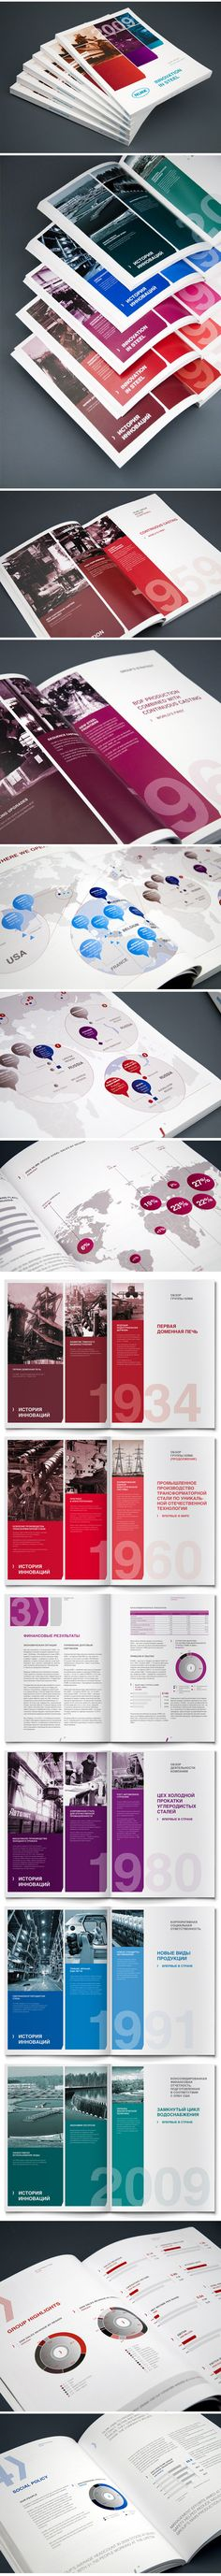 annual report NLMK by Andrew Gorkovenko, via Behance.